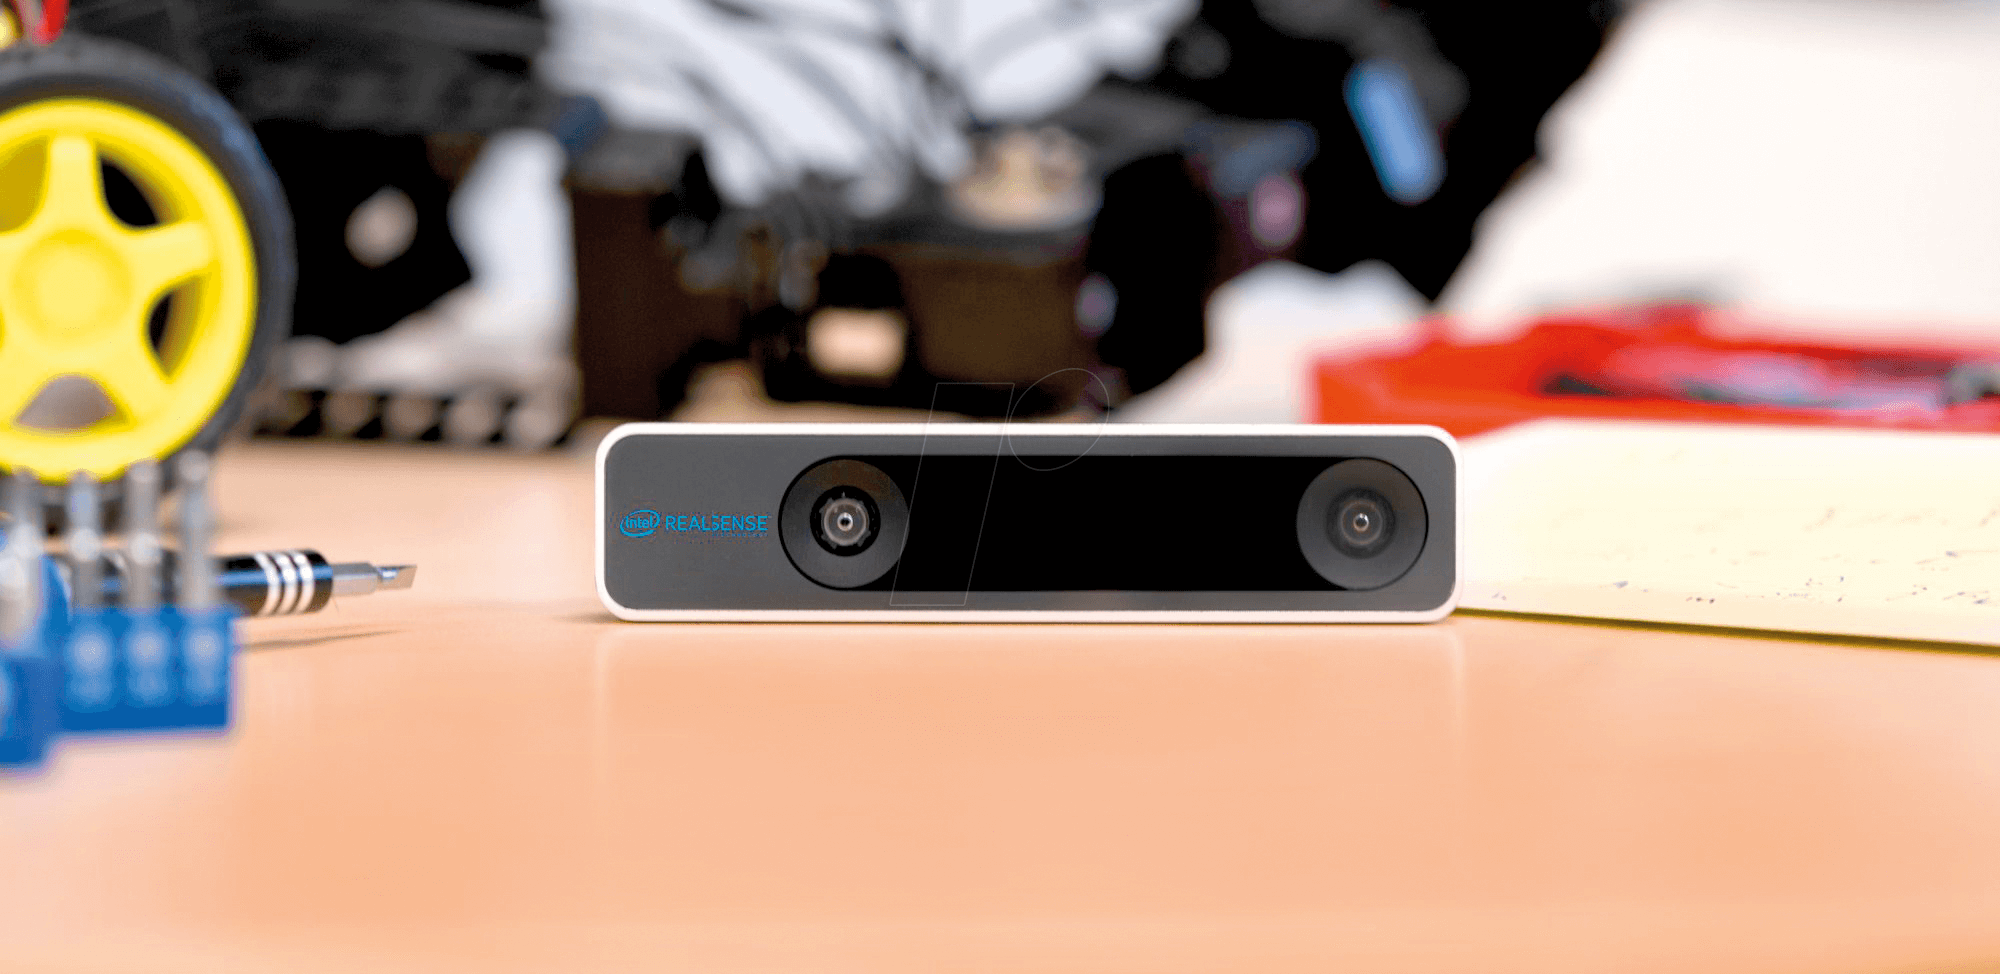 INTEL T265 - Webcam Intel Tracking Camera T265